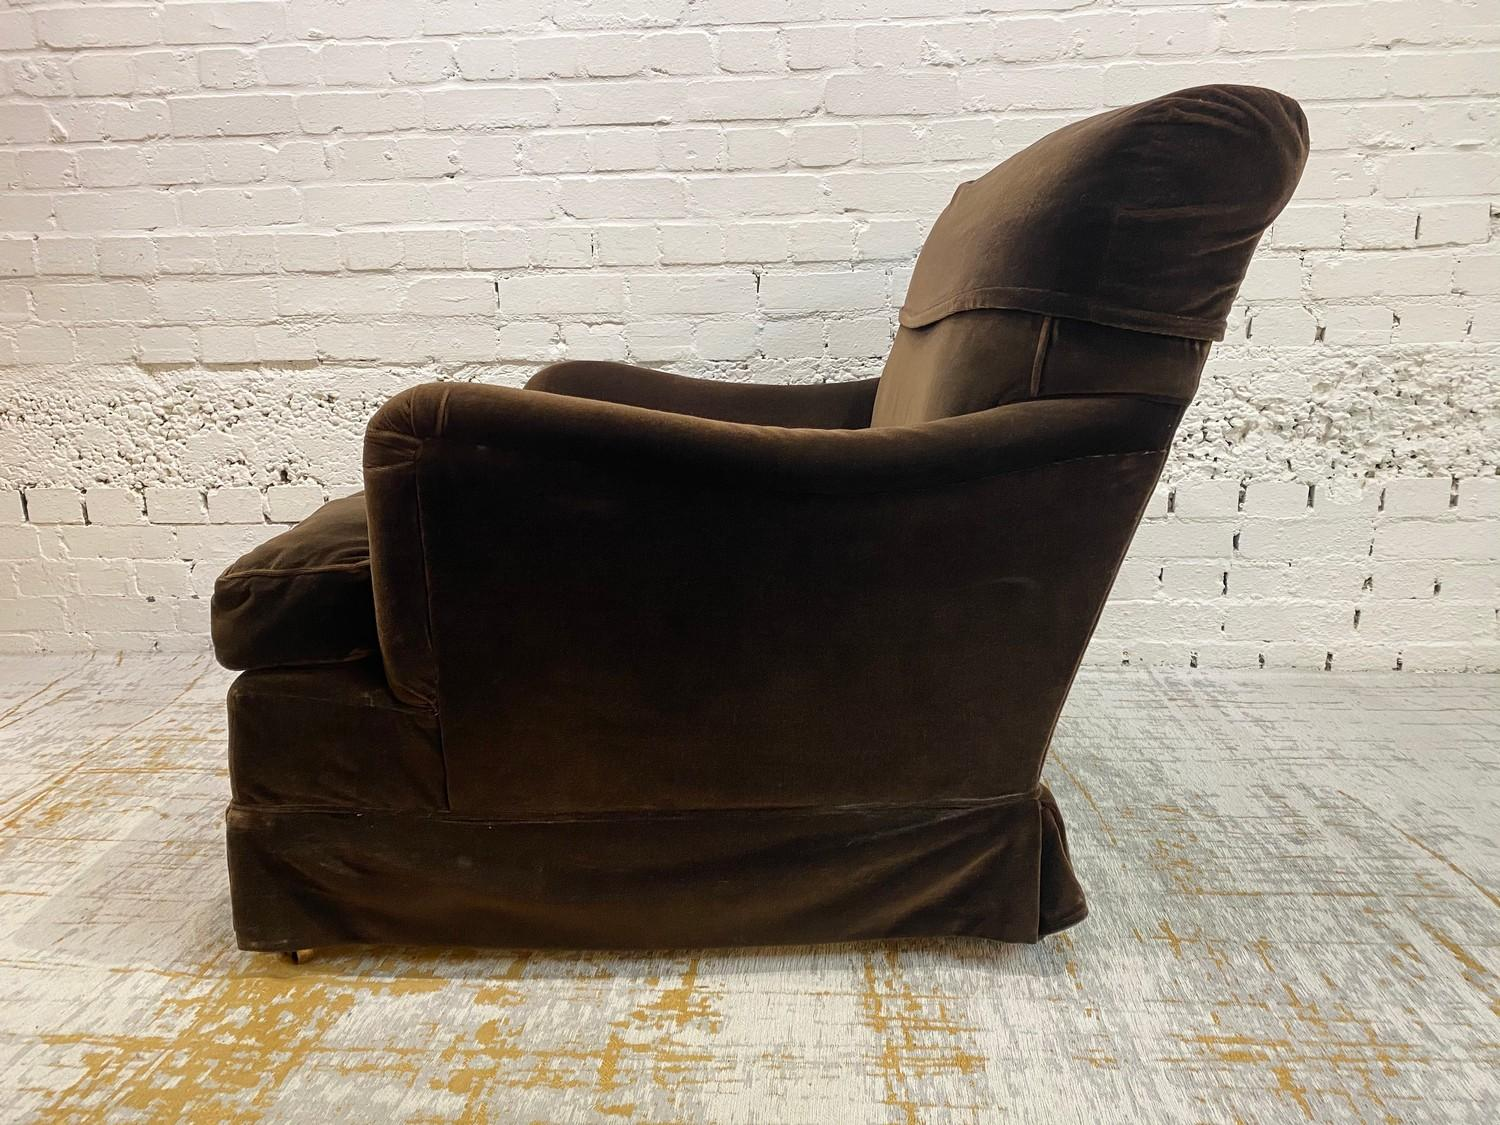 HOWARD AND SONS BRIDGEWATER ARMCHAIR, stamped 'Howard Chairs, 48 Sth Audley St London W.1 2385?, - Image 5 of 14